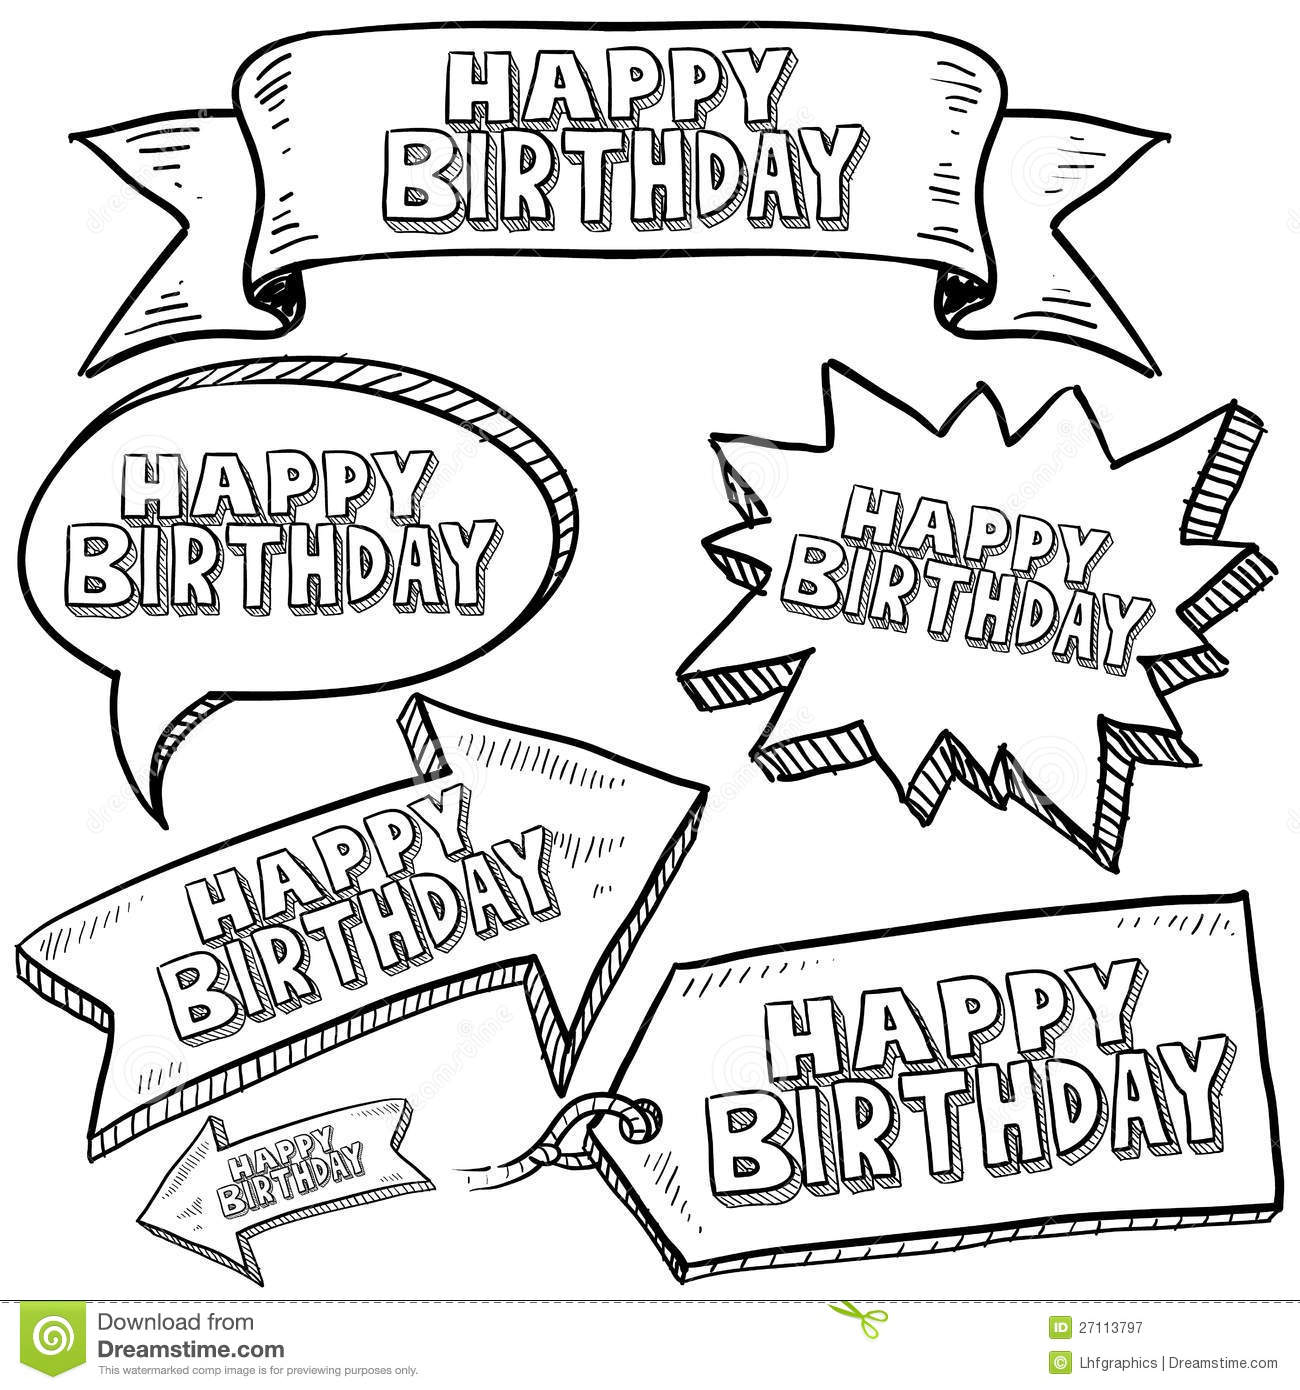 happy birthday labels free ; happy-birthday-labels-banners-27113797